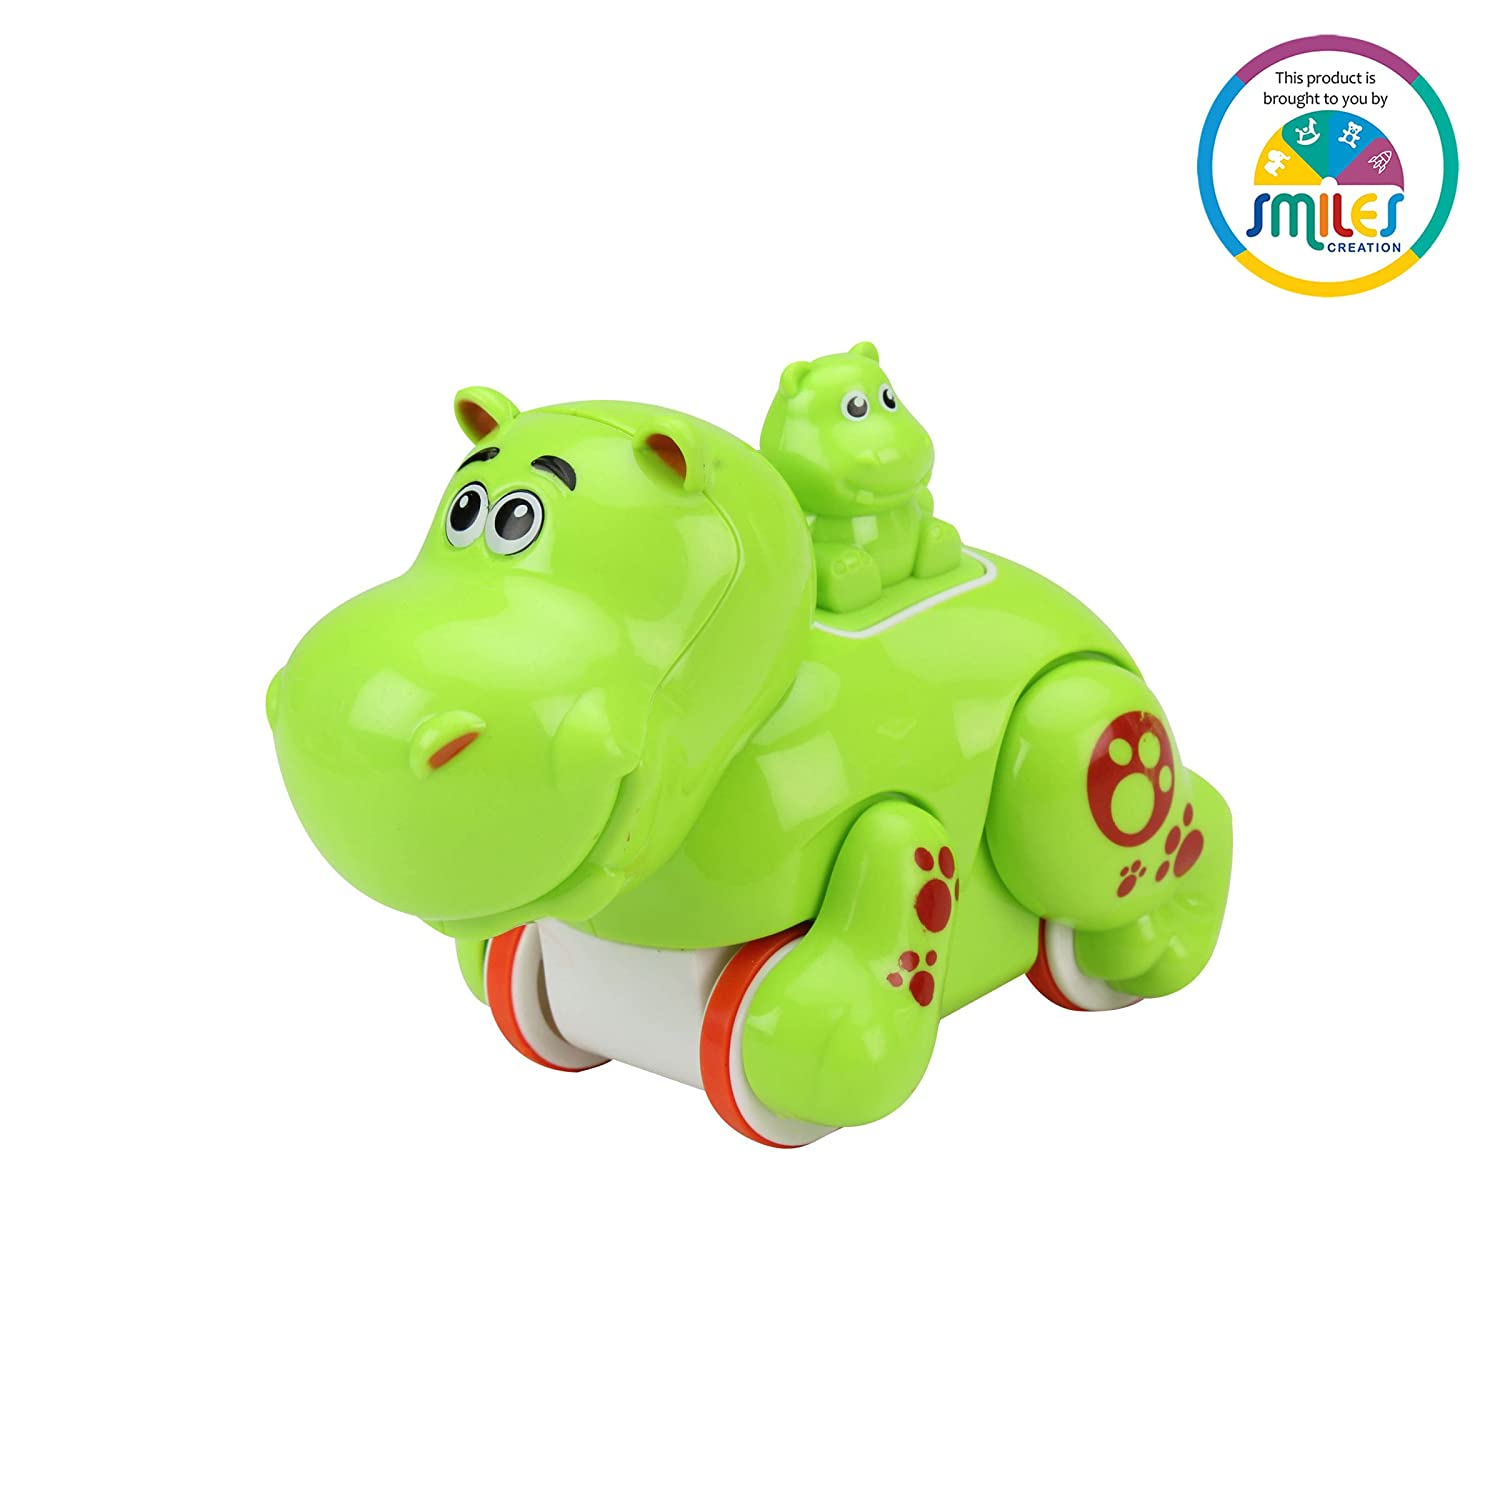 Buy Smiles Creation Press And Go Hippo Green Online At Low Prices Nero 3 In India